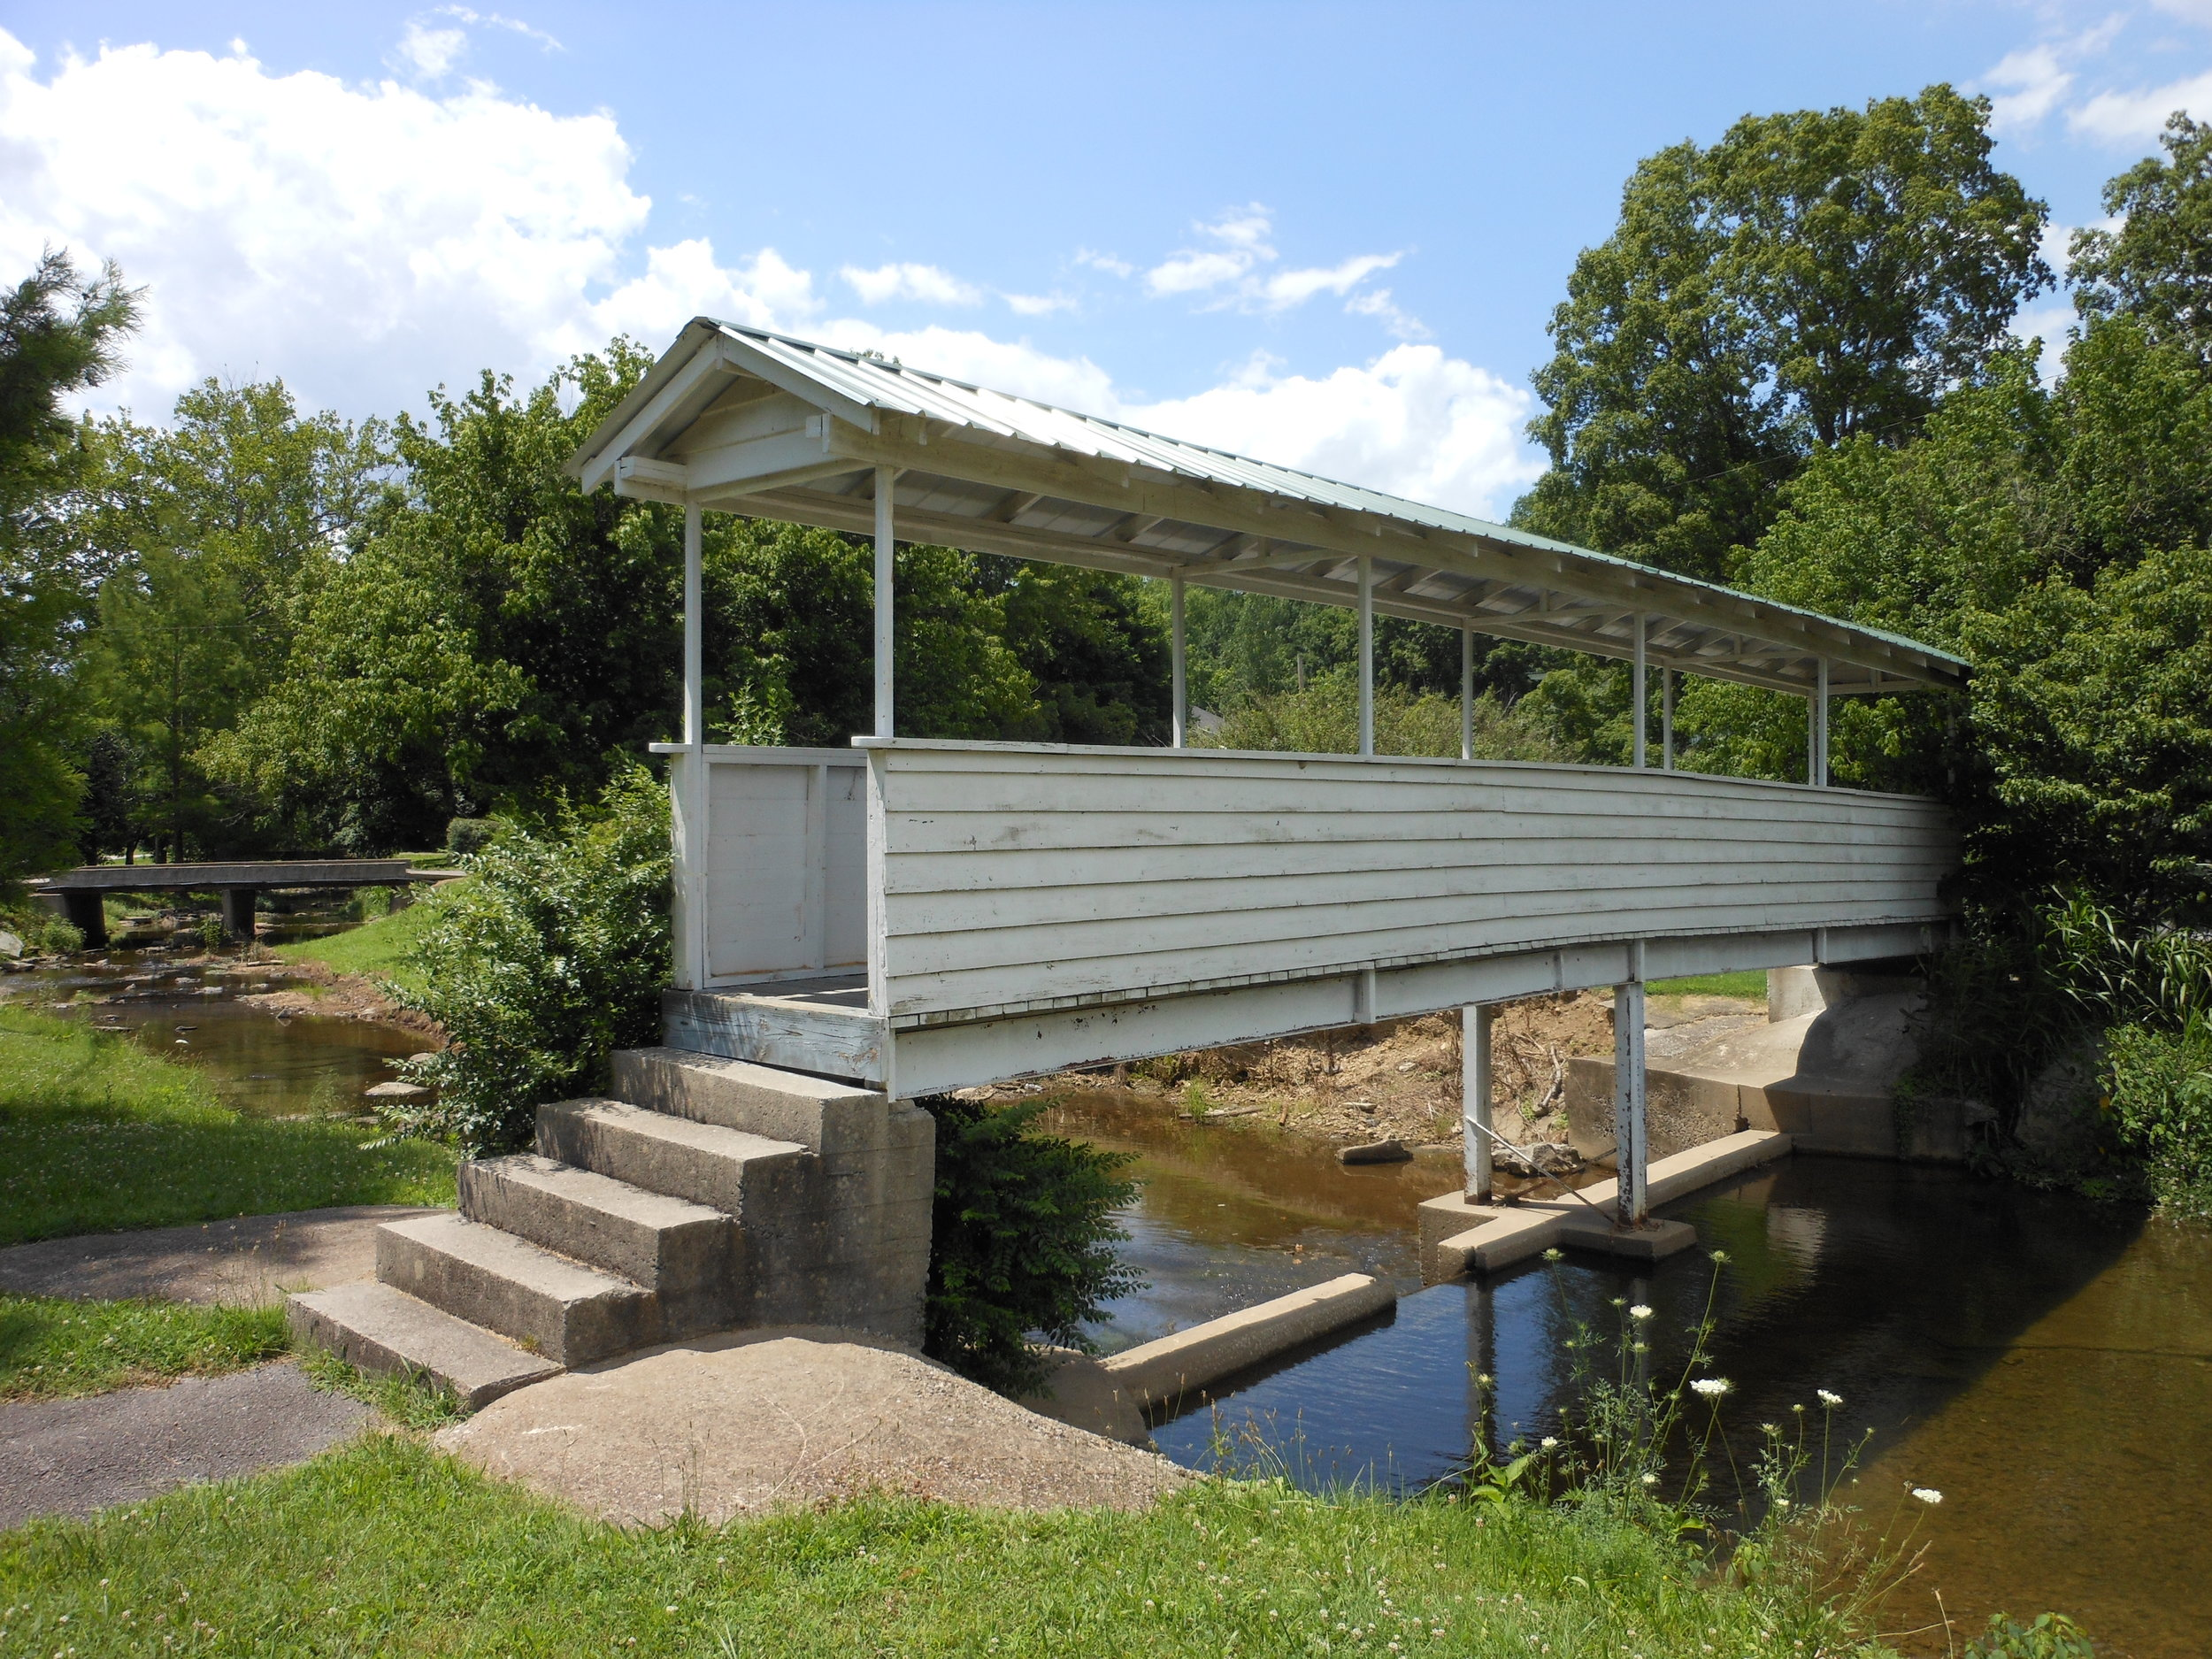 The covered walking bridge at the Donoho Hotel in Red Boiling Springs, TN.